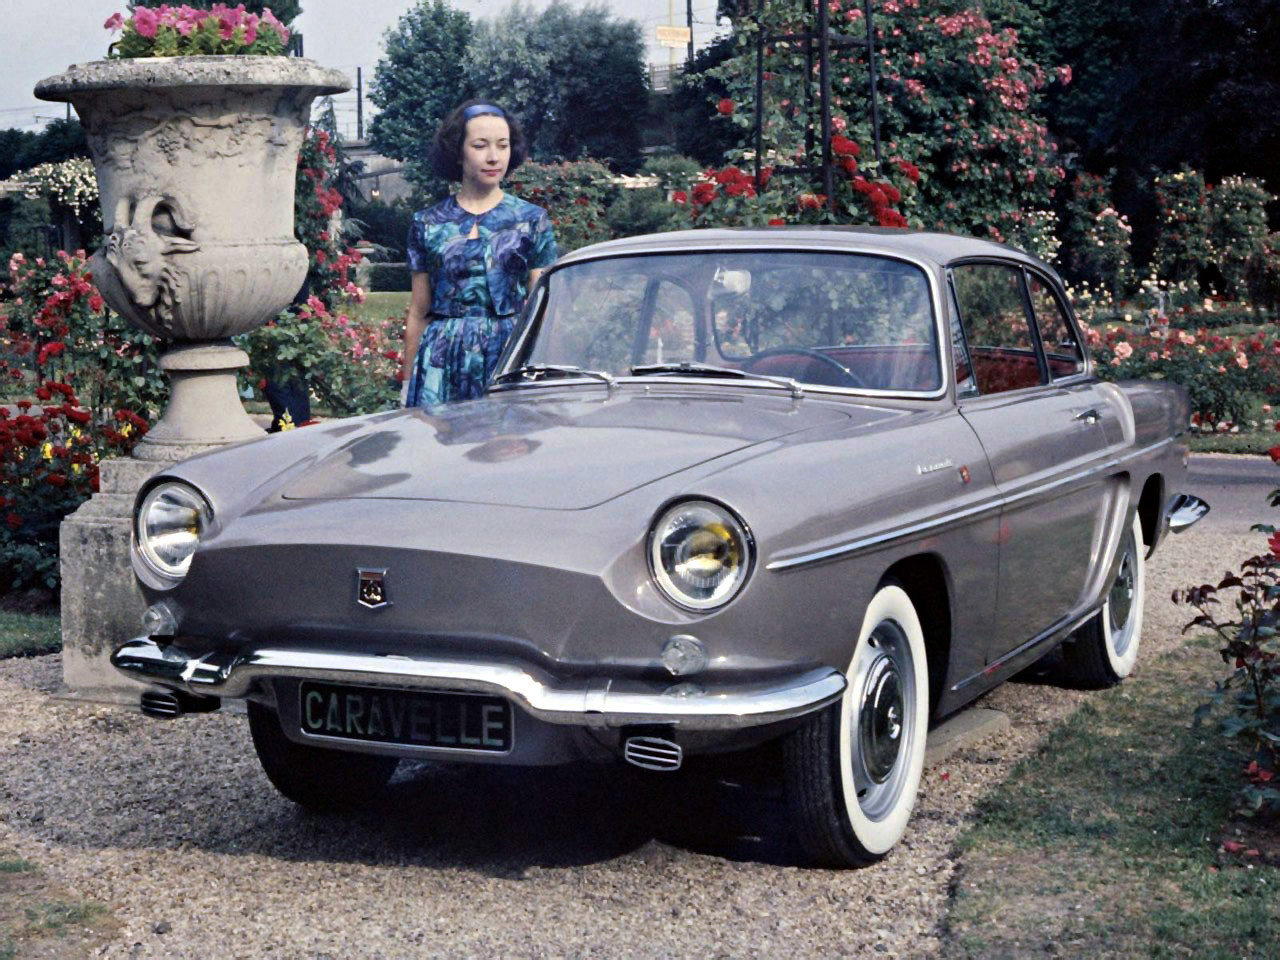 renault_caravelle_1100_coupe_1